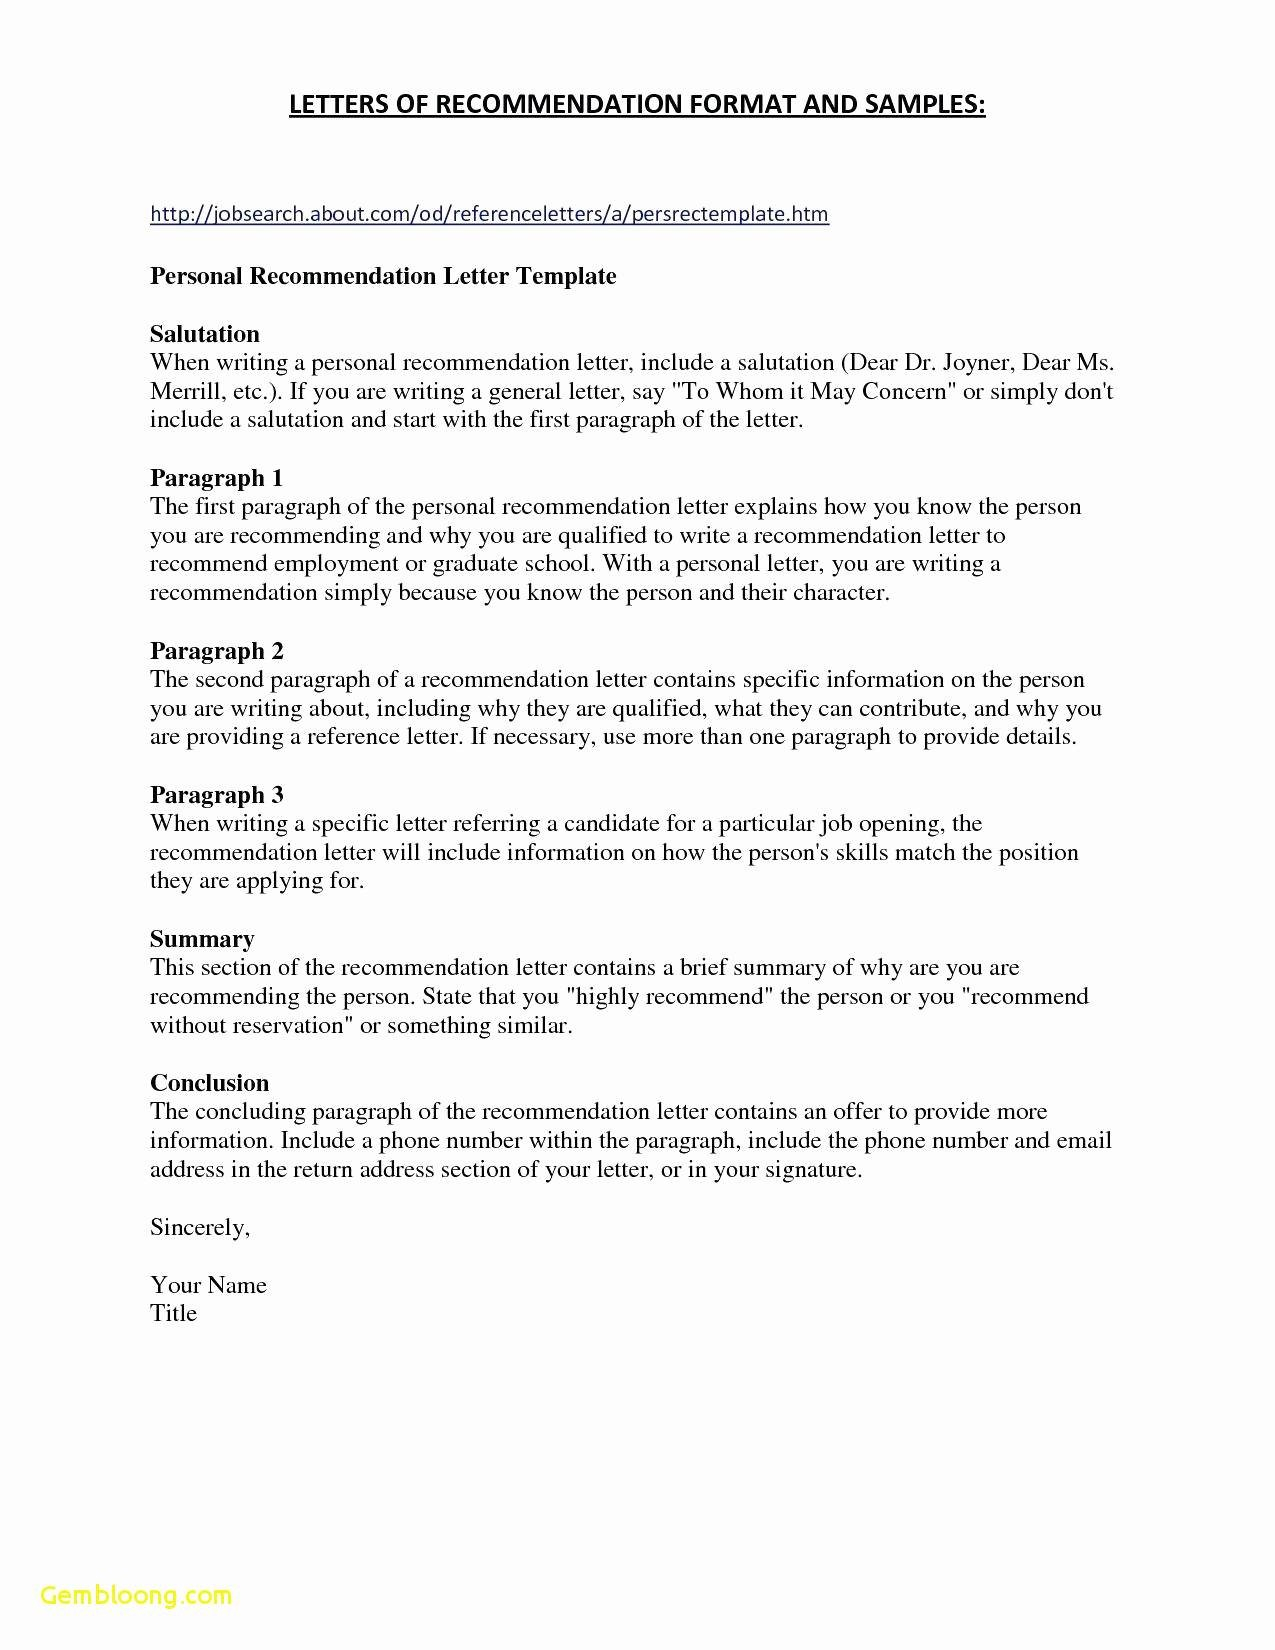 Business contract termination letter template collection letter business contract termination letter template ceo employment contract template accmission Images